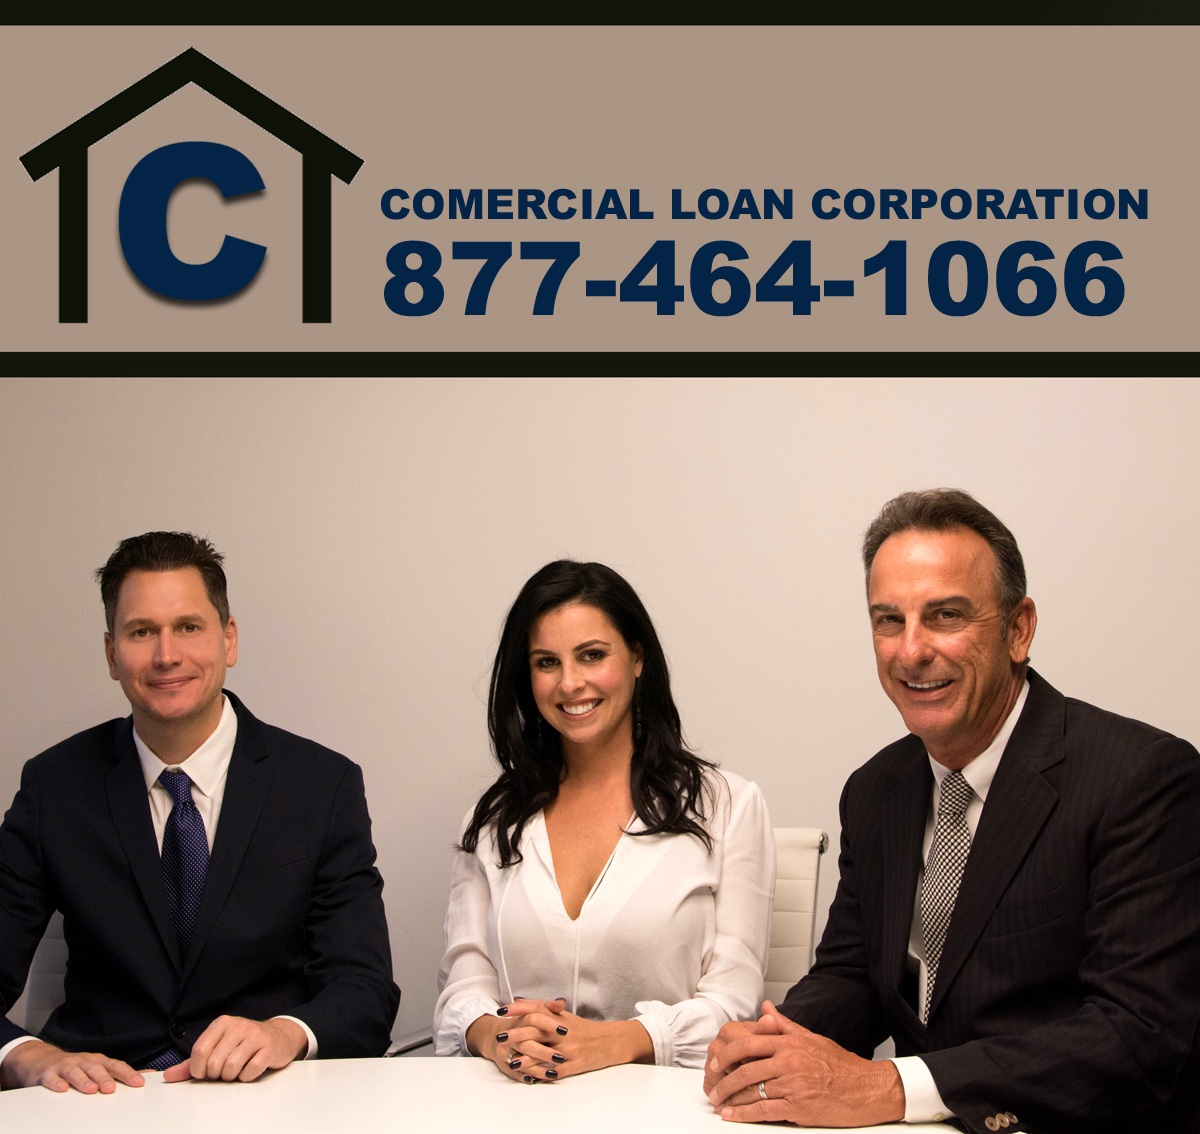 Commercial Loan Corporation - California Private Money Lender